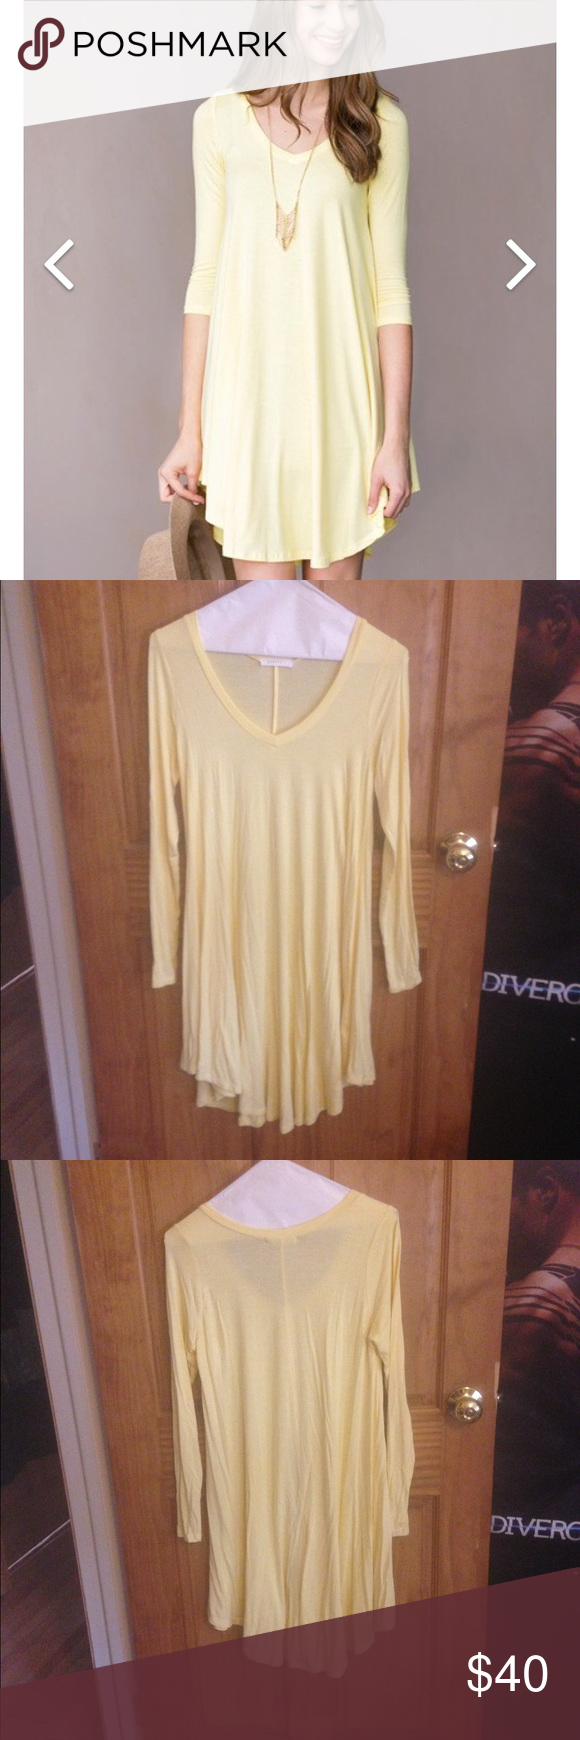 Yellow dress long sleeve  New listing NWOT yellow vneck dress  Casual Yellow dress and